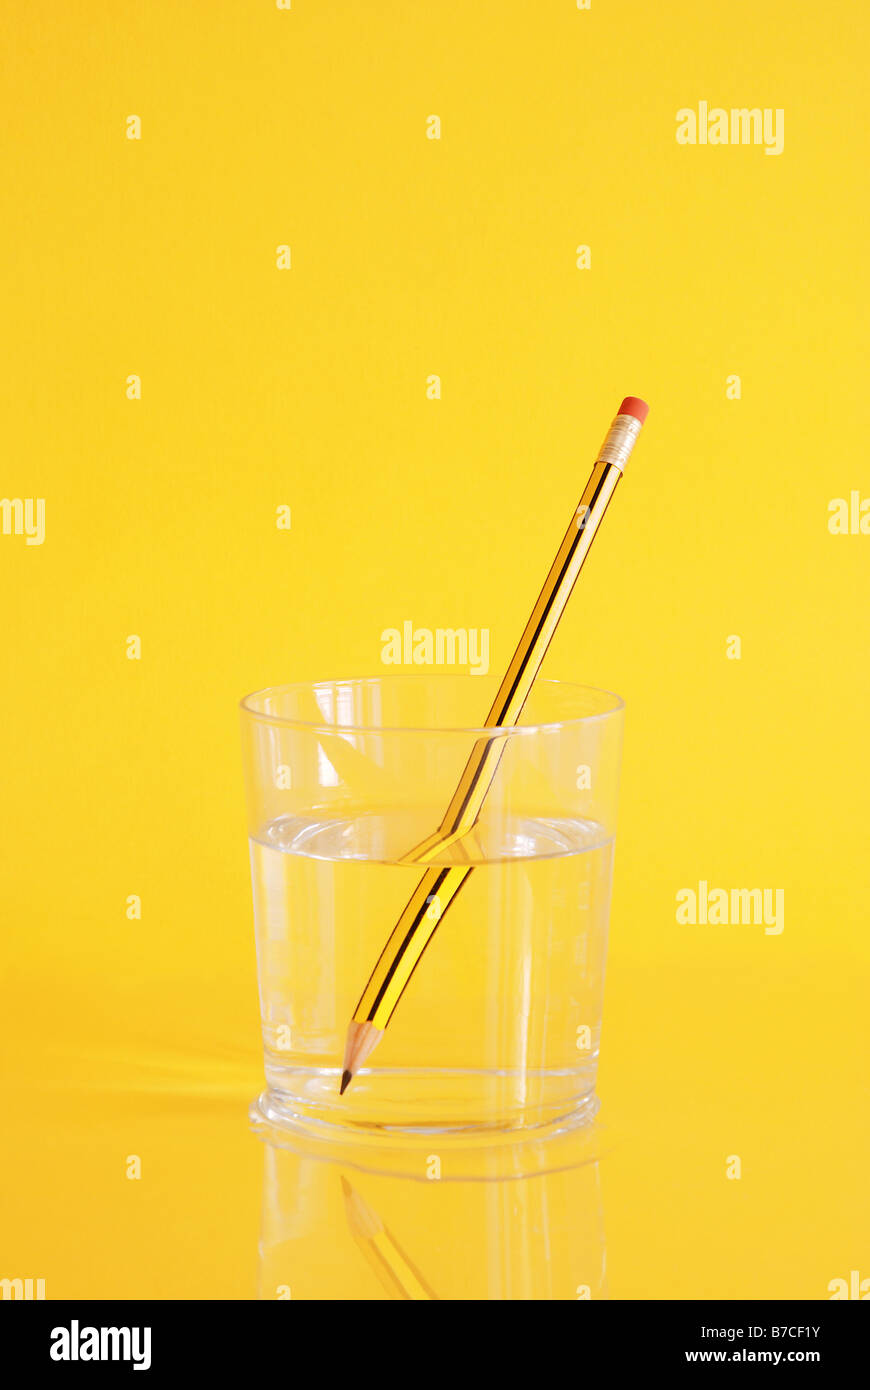 Pencil in glass of water. - Stock Image